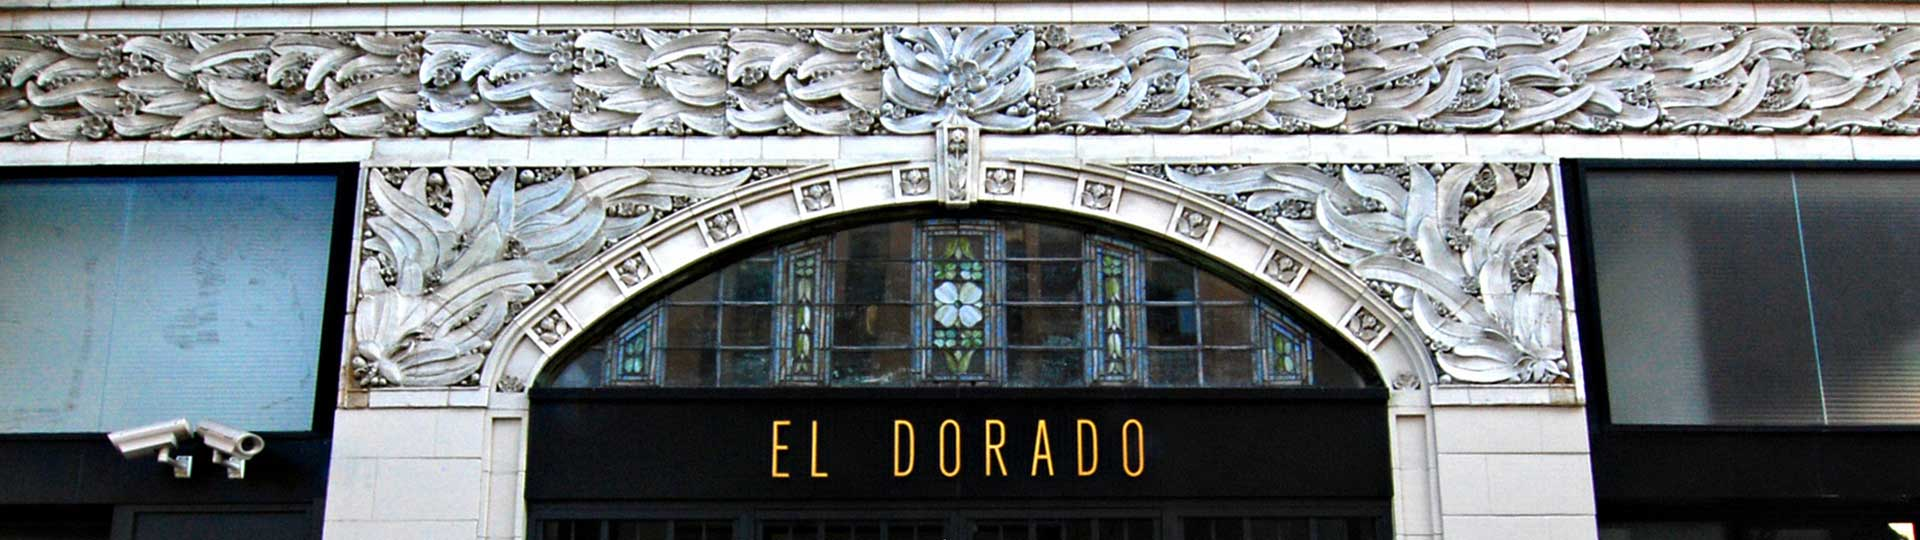 El Dorado Lofts